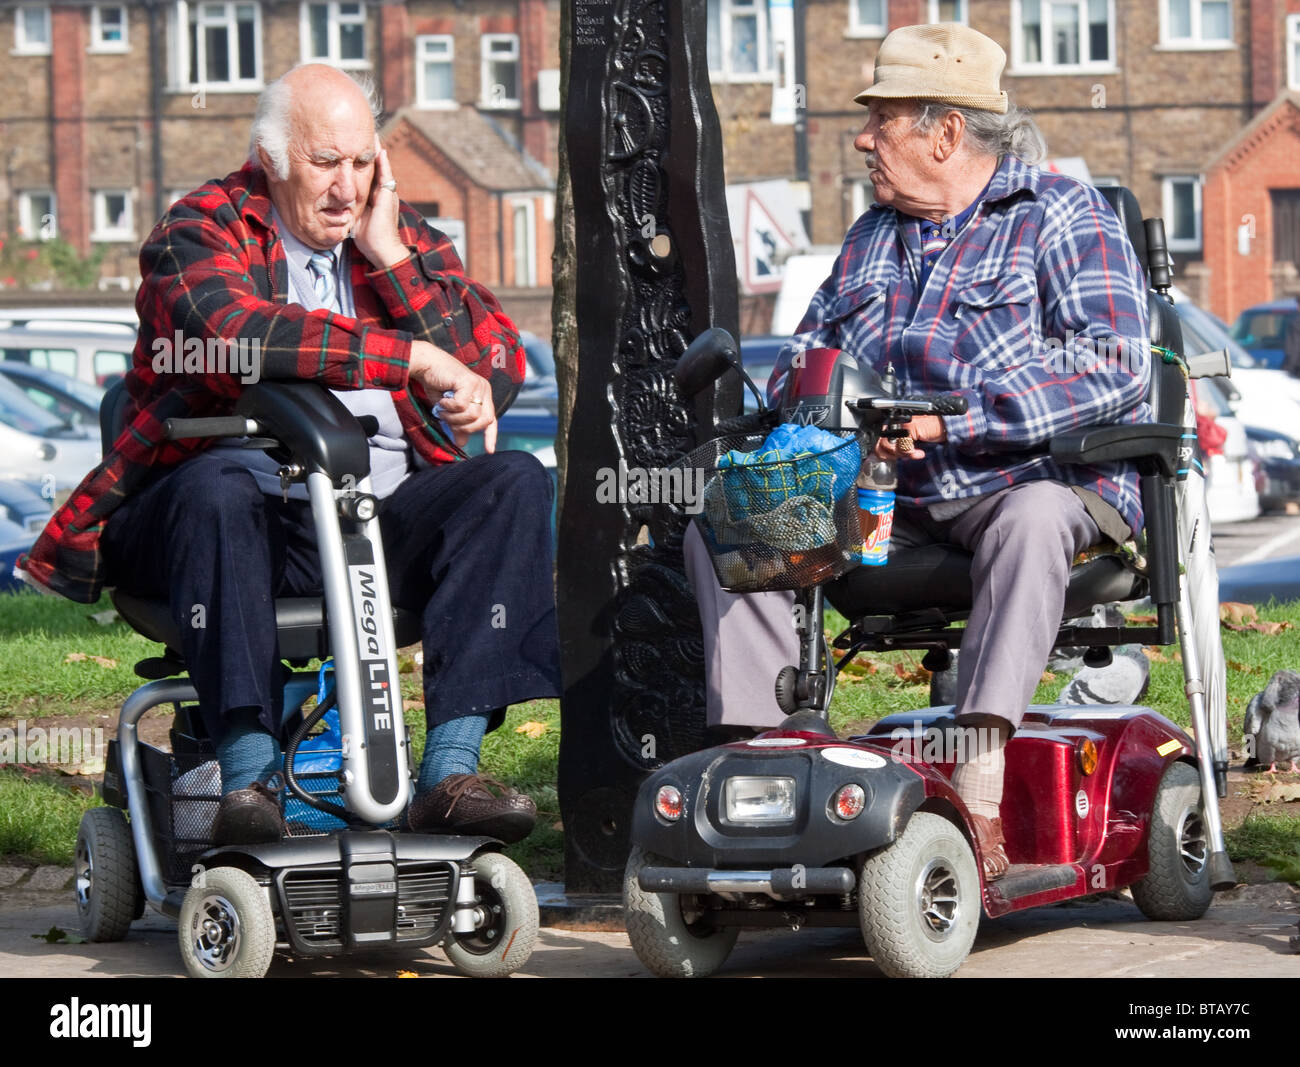 Two Elderly Men on Motability Scooters - Stock Image